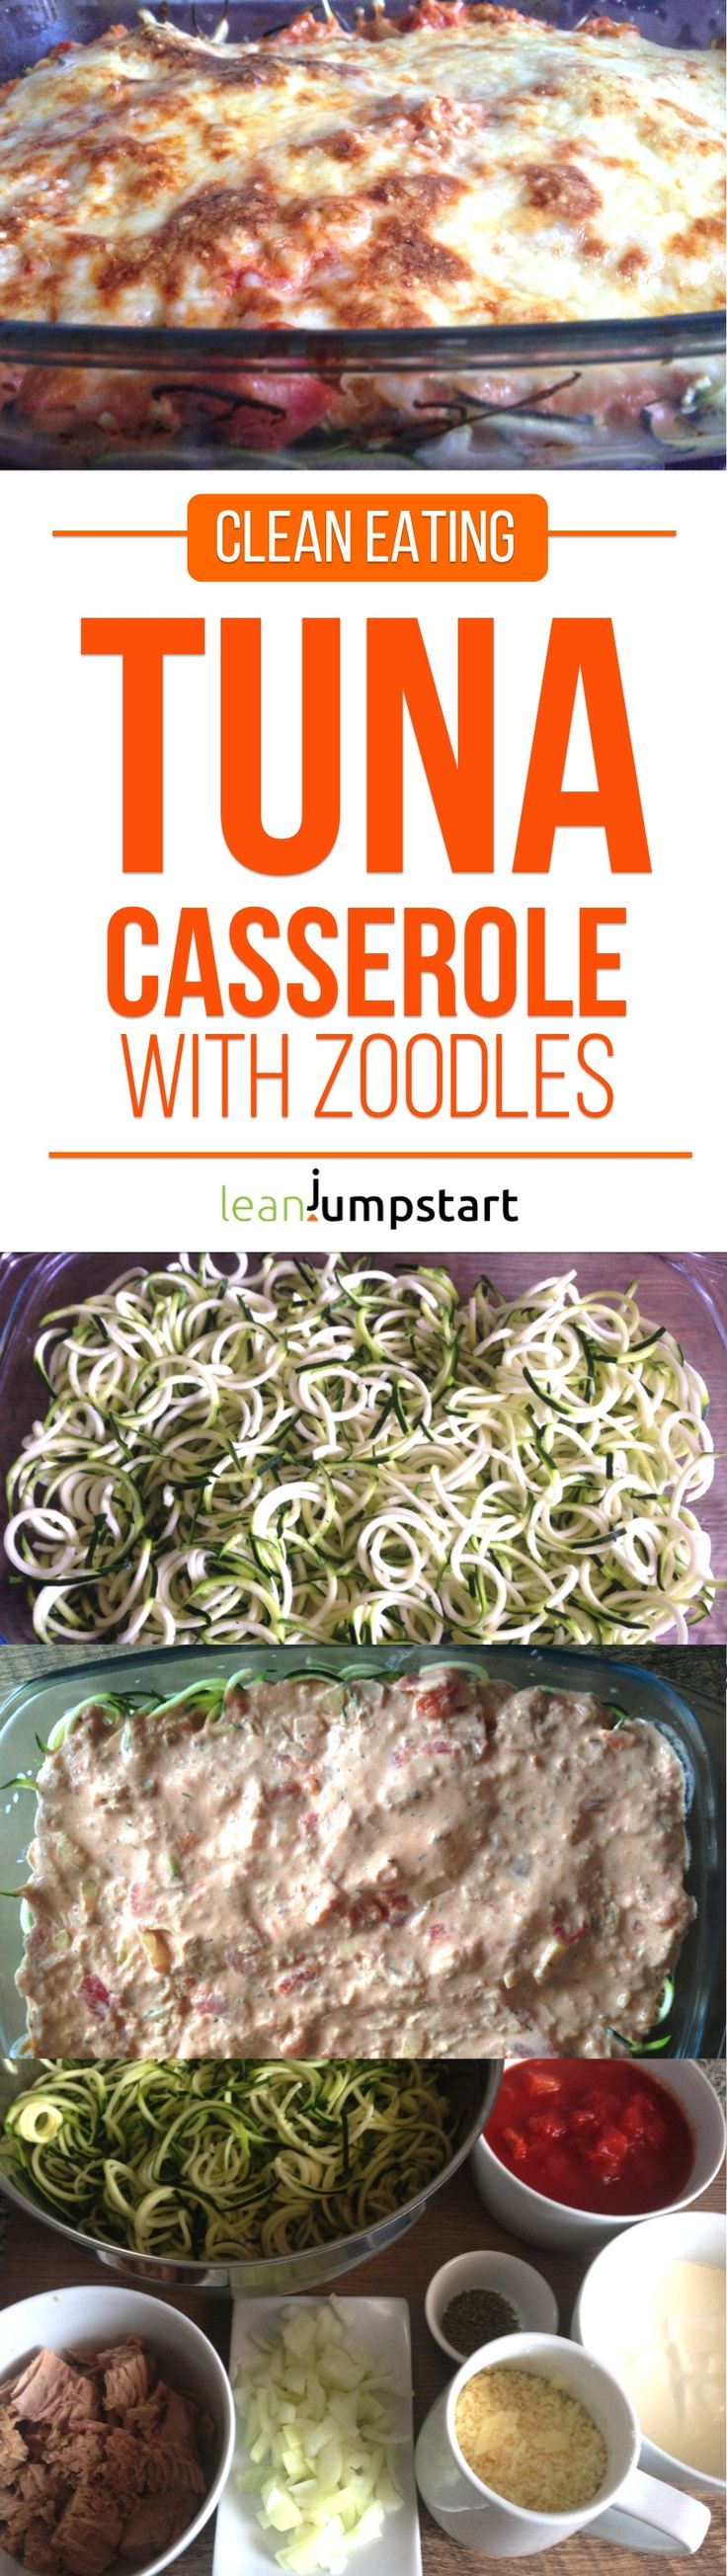 Tuna Casserole Recipe with Zoodles: Almost Clean and Easy